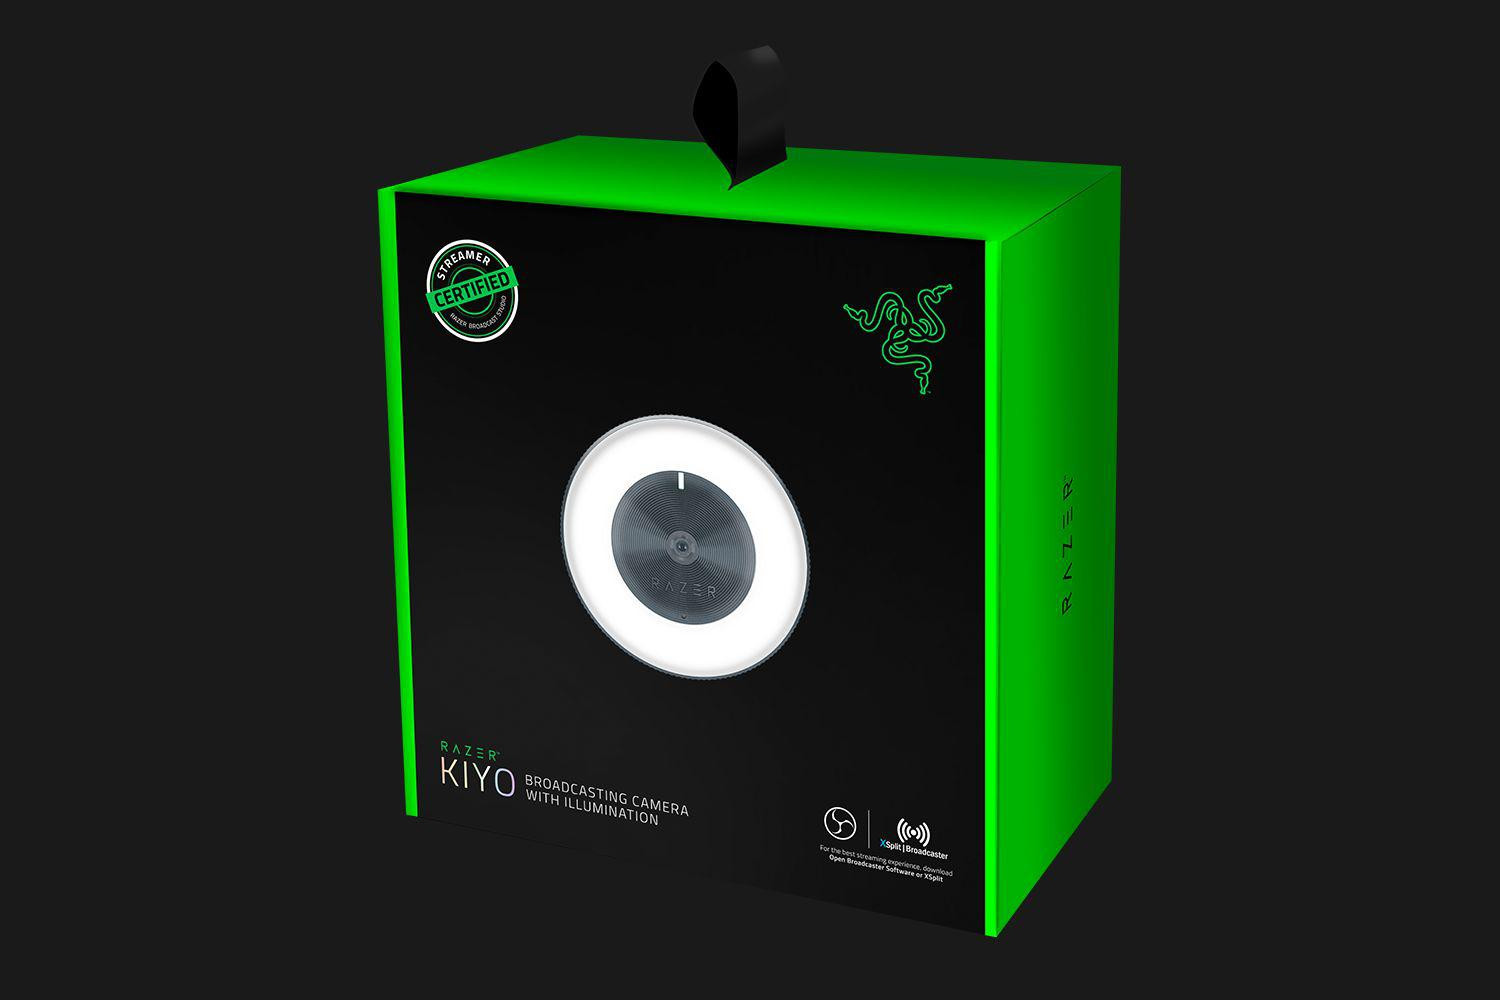 Webcam Razer Kiyo HD 720p, Image resolution: 4 Megapixels, Still Image Resolution: 2688x1520, 720p up to 60fps, microfon, USB, Cable Length: 1.5 meters braided cable, Compatible with Open Broadcaster Software and Xspli - imaginea 6